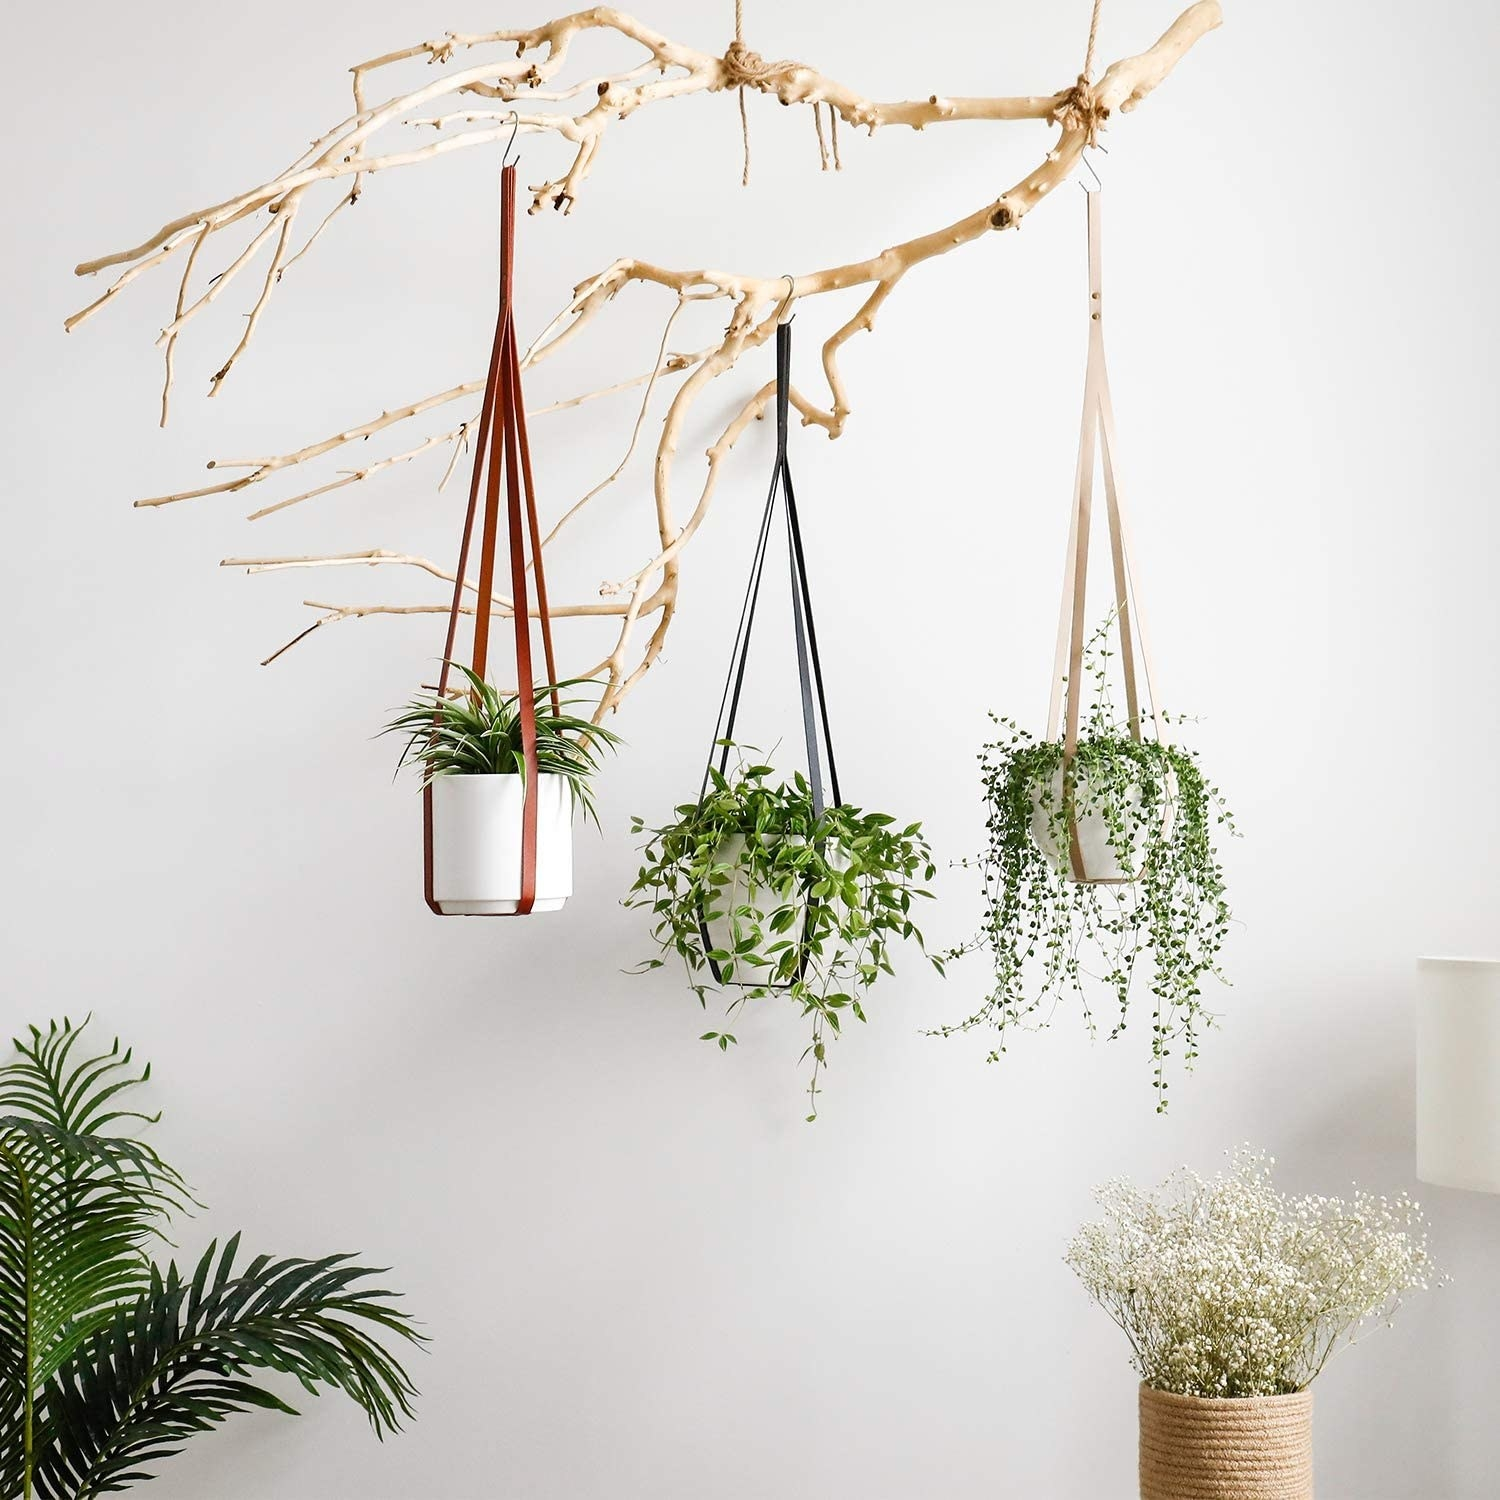 Three plants in faux leather hangers